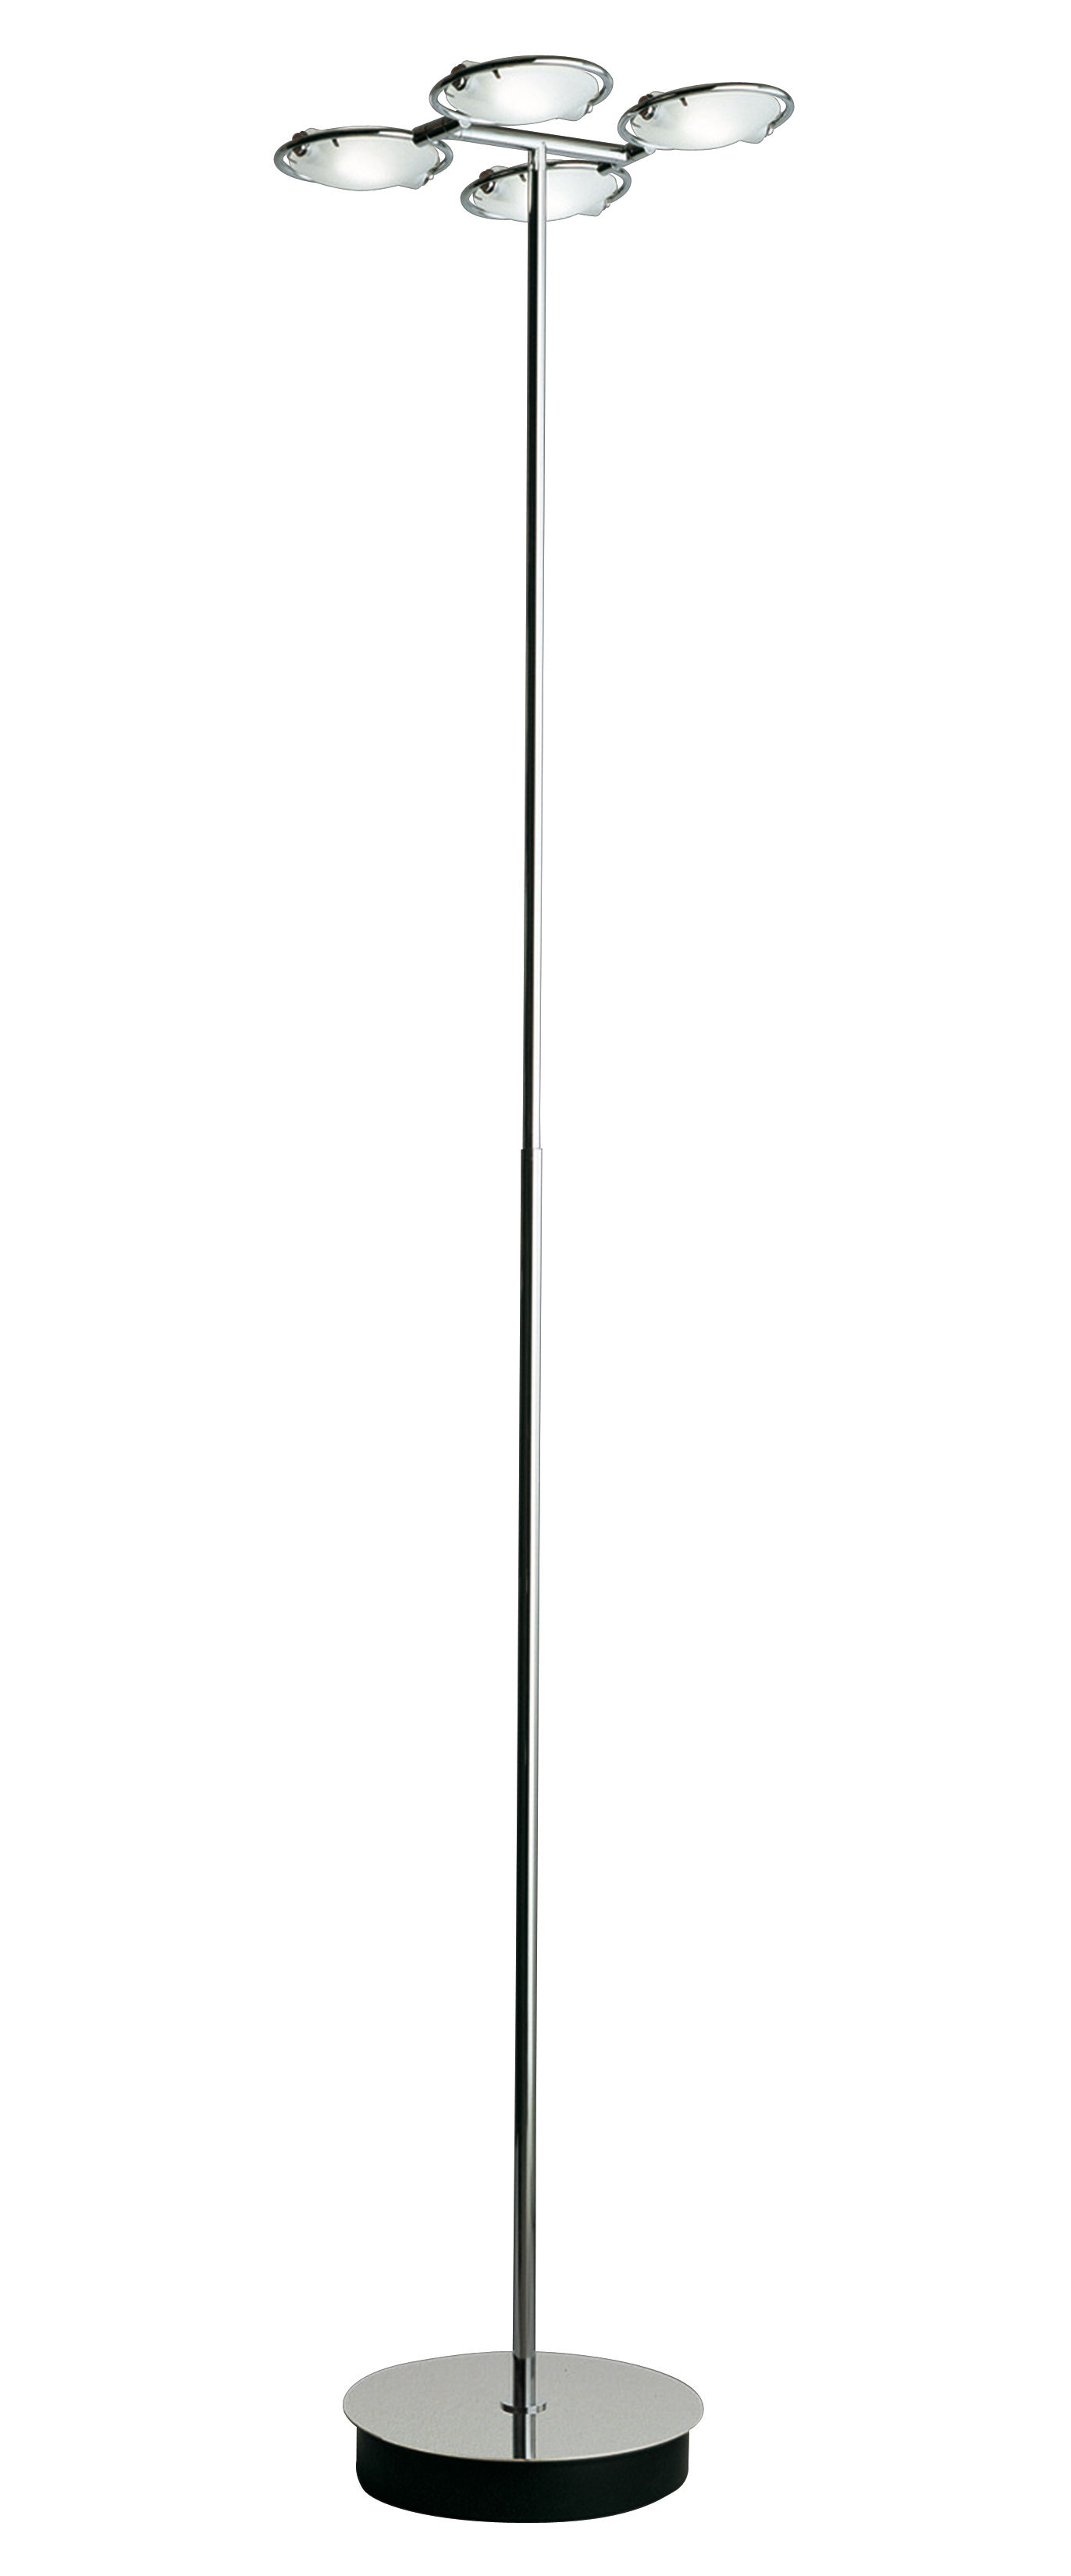 Lighting - Floor lamps - Nobi Floor lamp - 4 diffusers by Fontana Arte - Chrome - Chromed metal, Glass